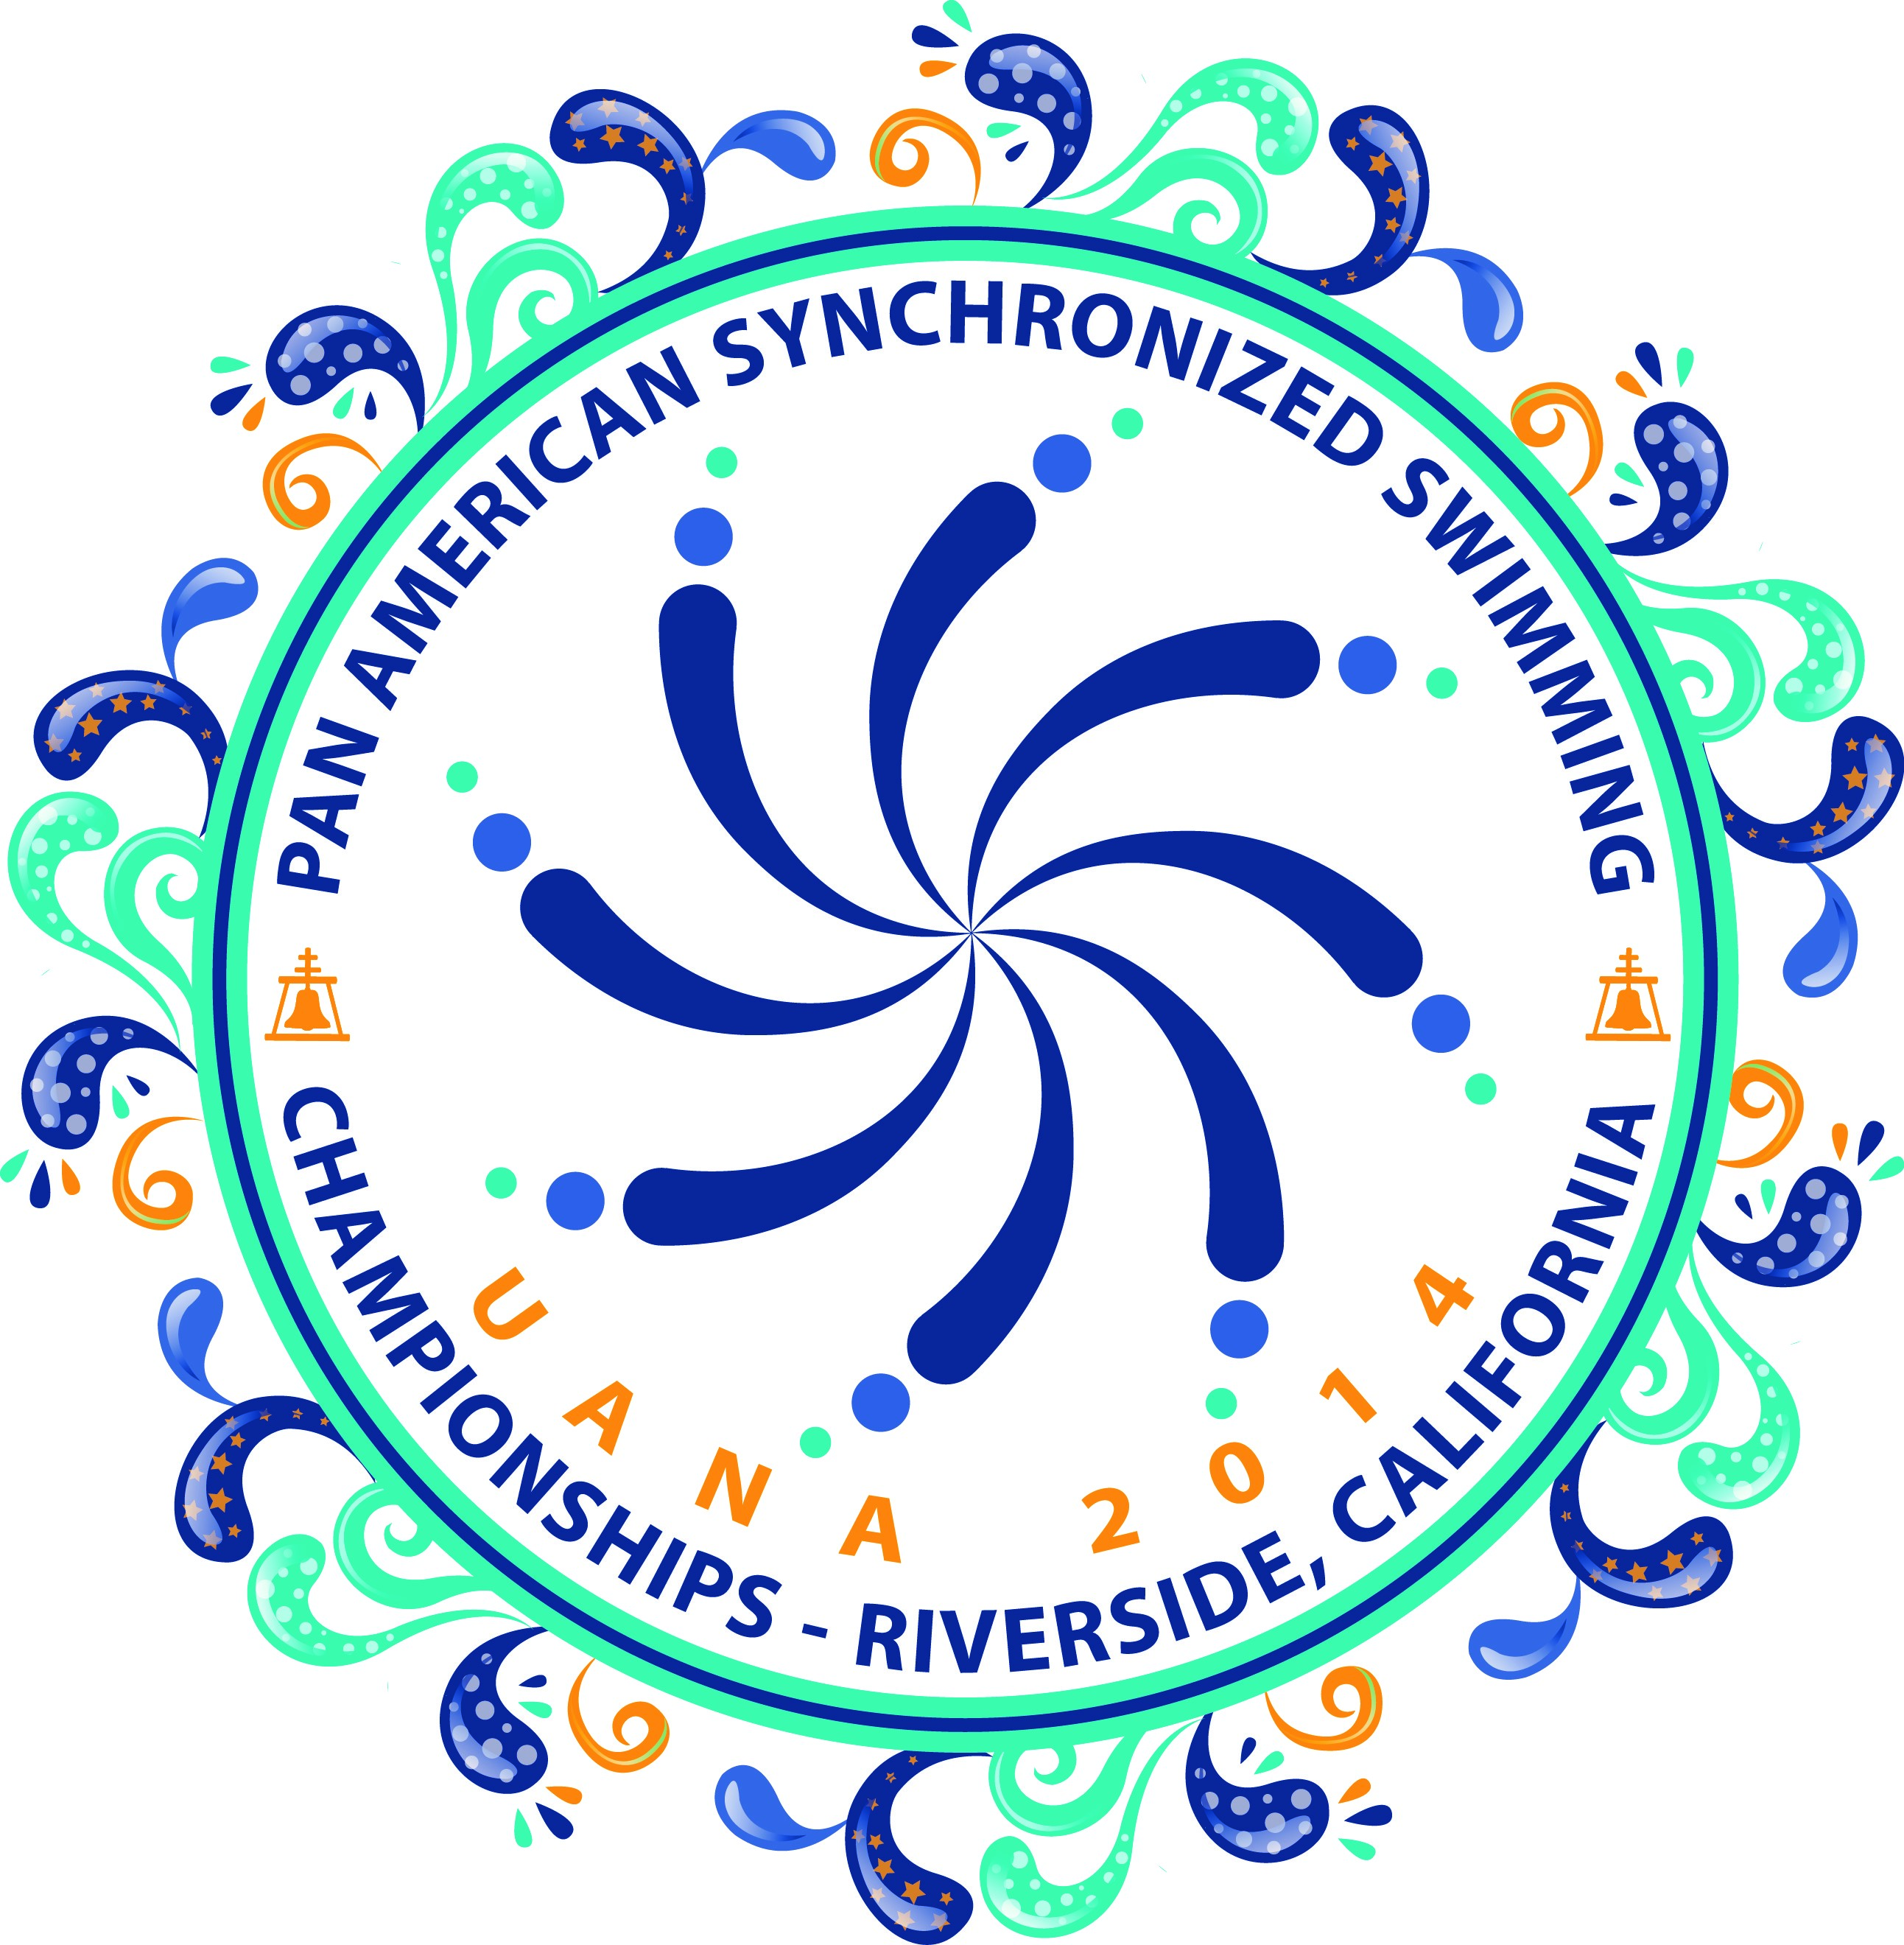 Pan American Synchronized Swimming Championships 2014